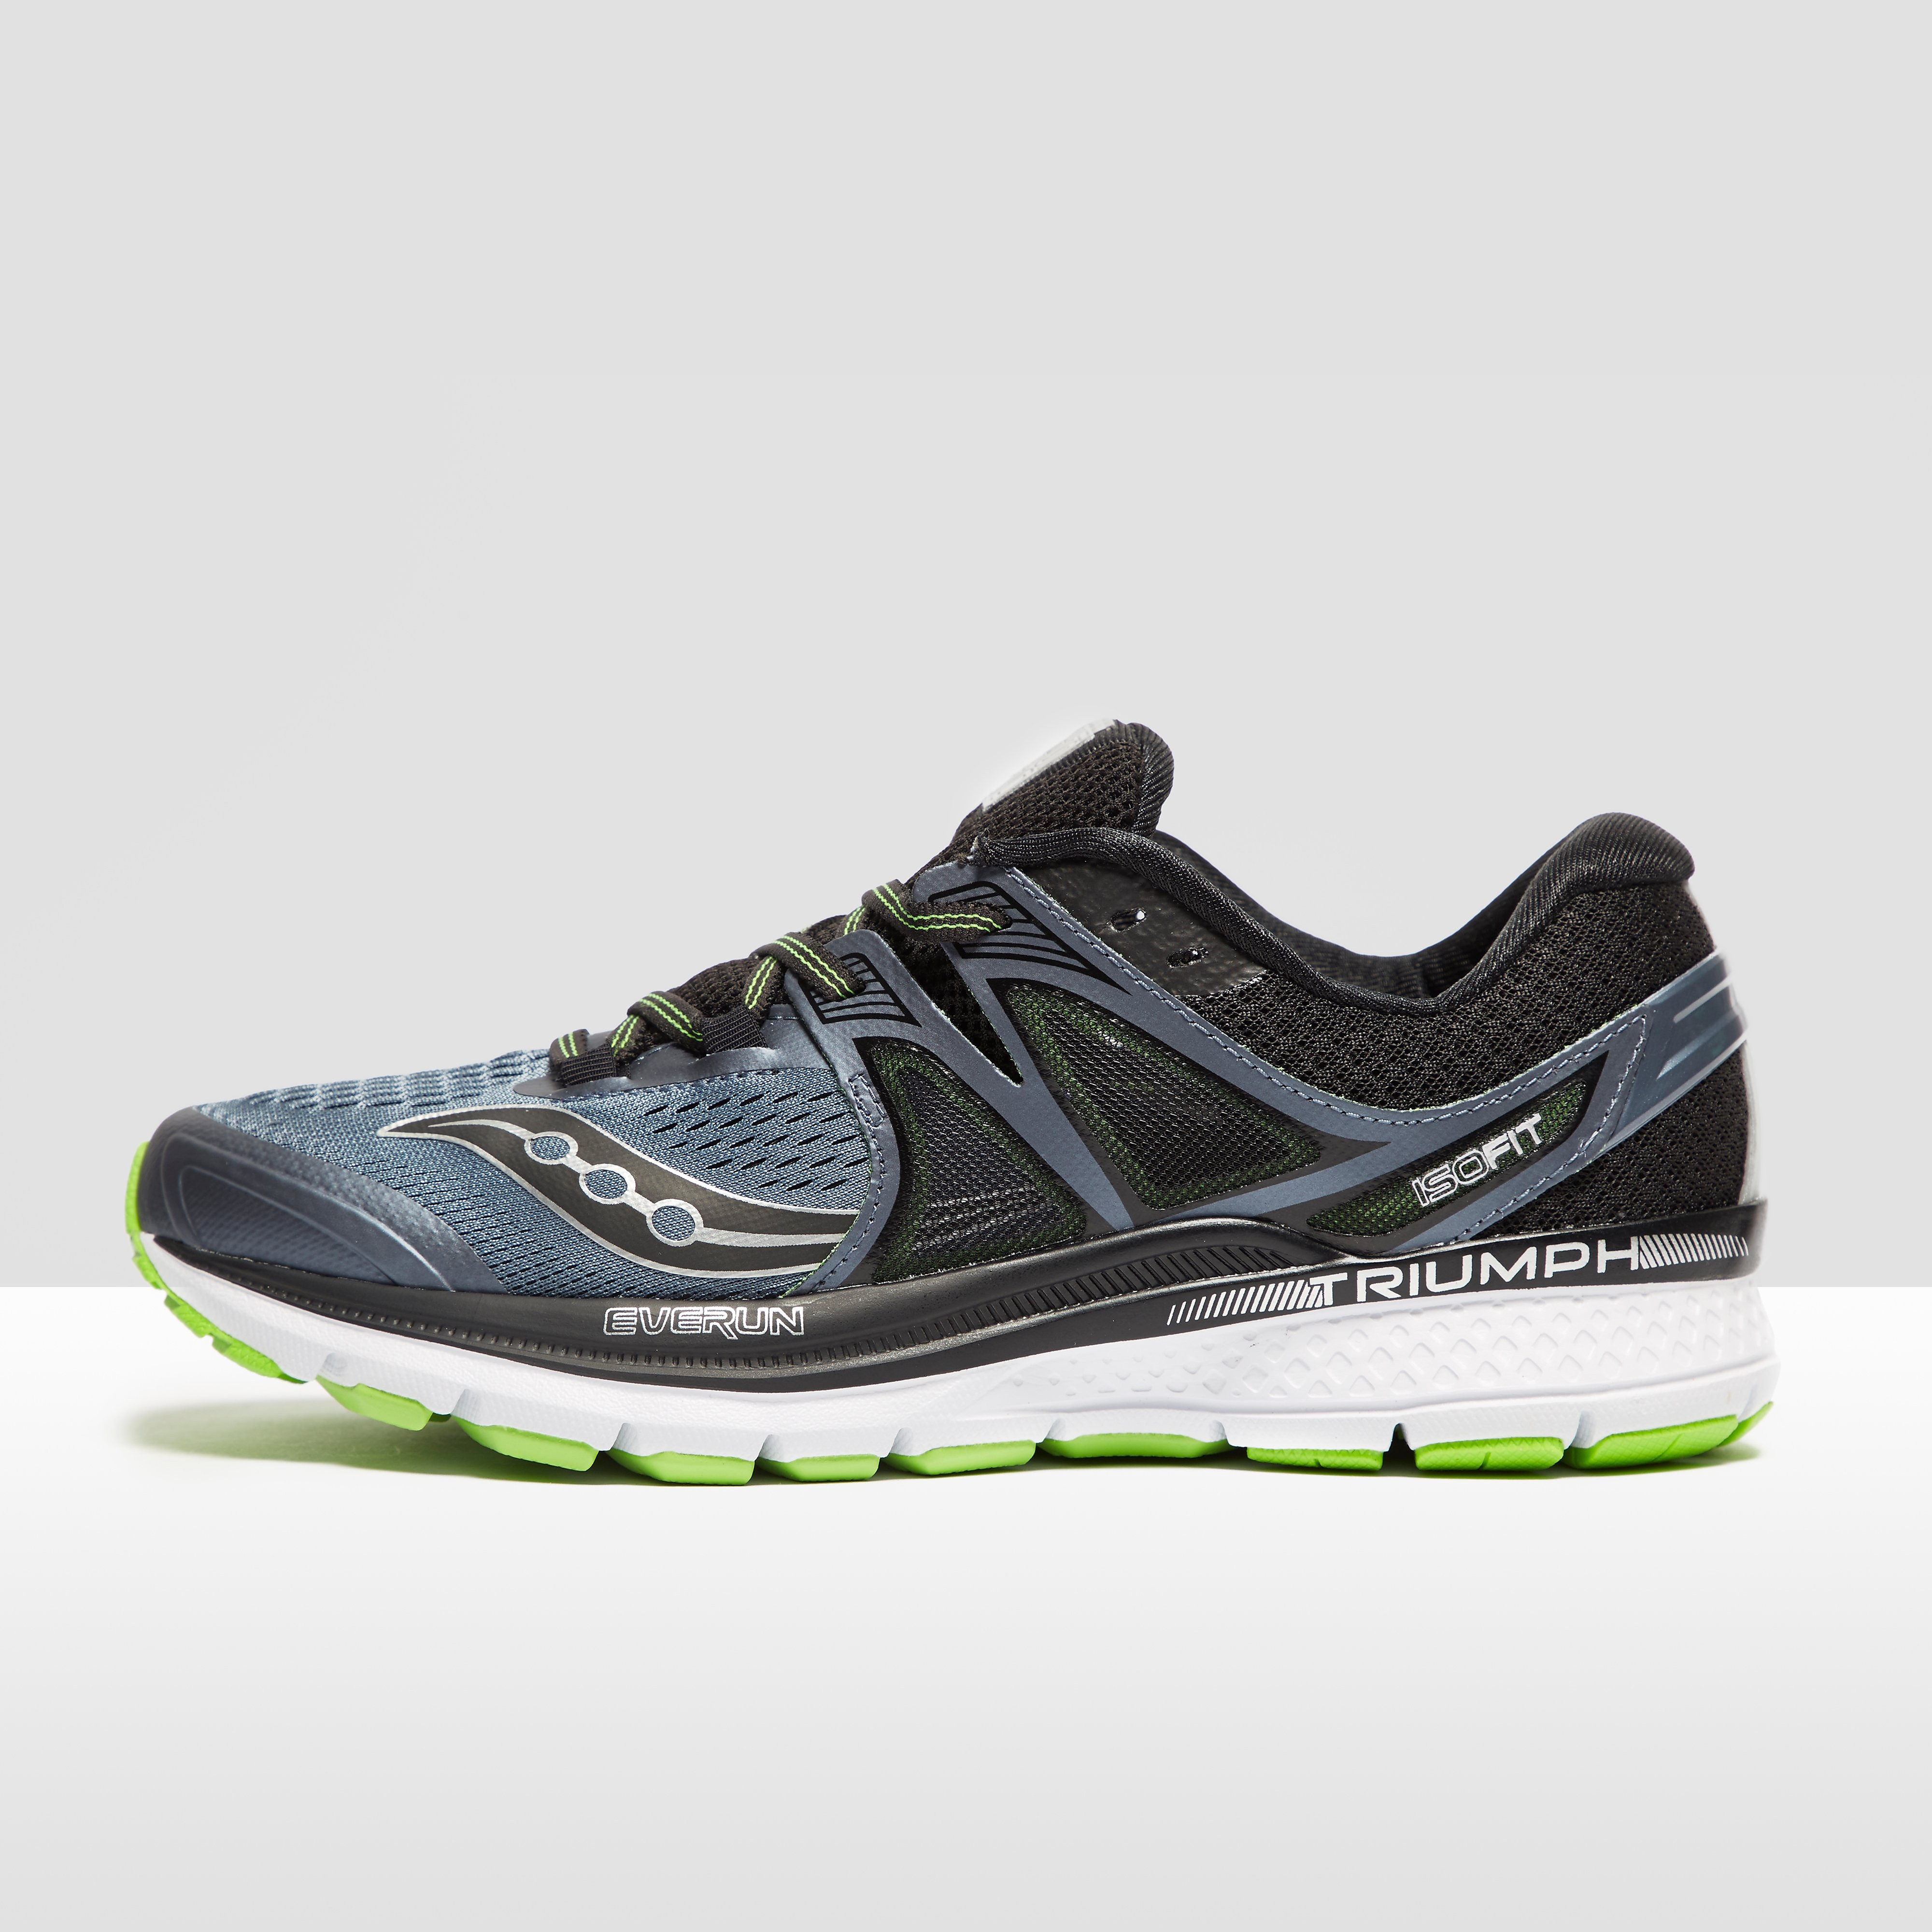 Saucony Triumph ISO 3 Men's Running Shoes